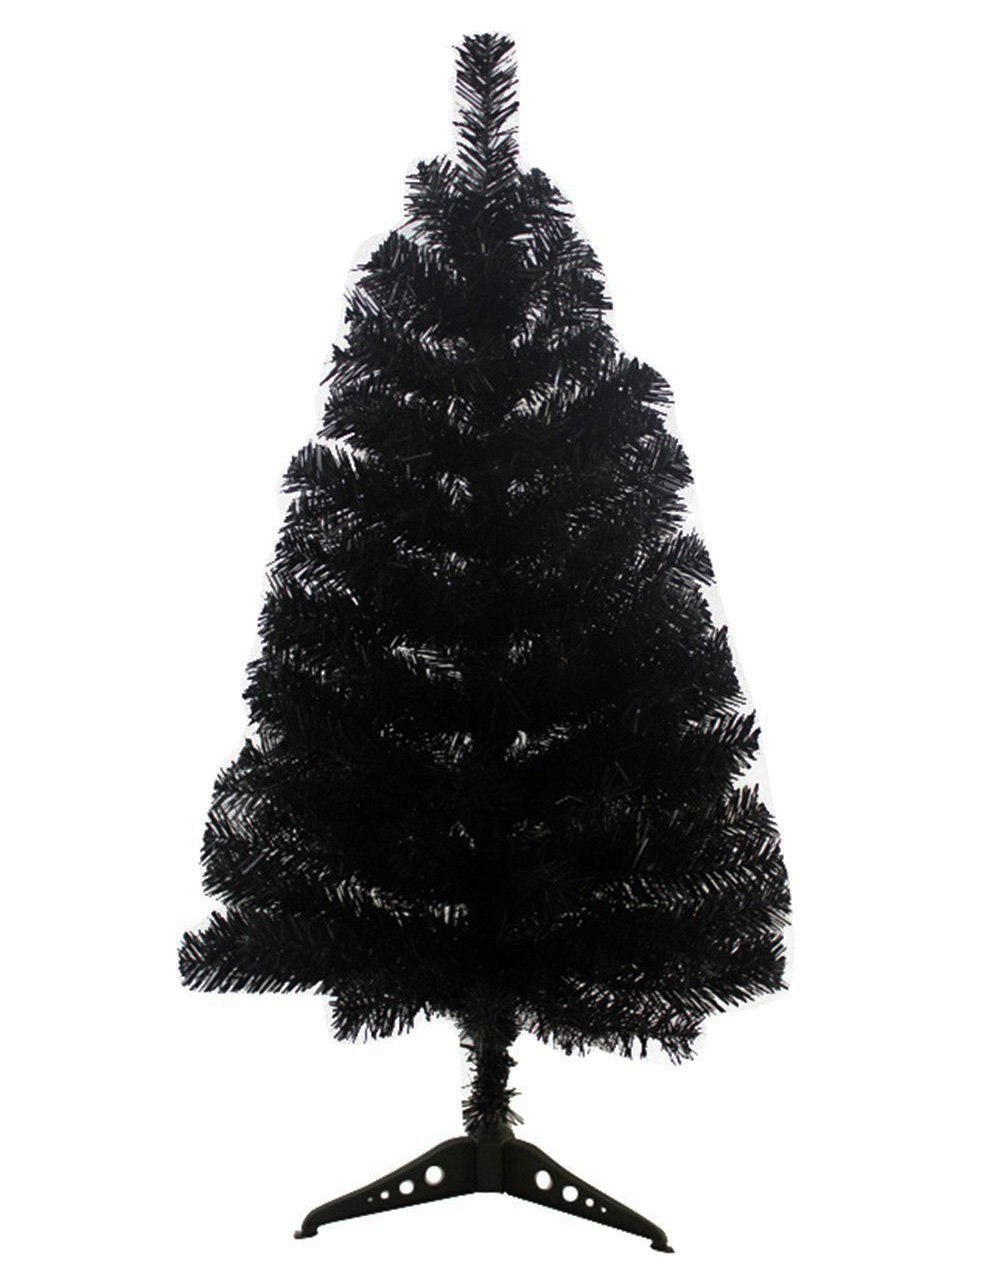 FENFEN 1.9/2.9 Foot Premium Spruce Hinged Artificial Christmas Tree Stand (Black, 60CM)